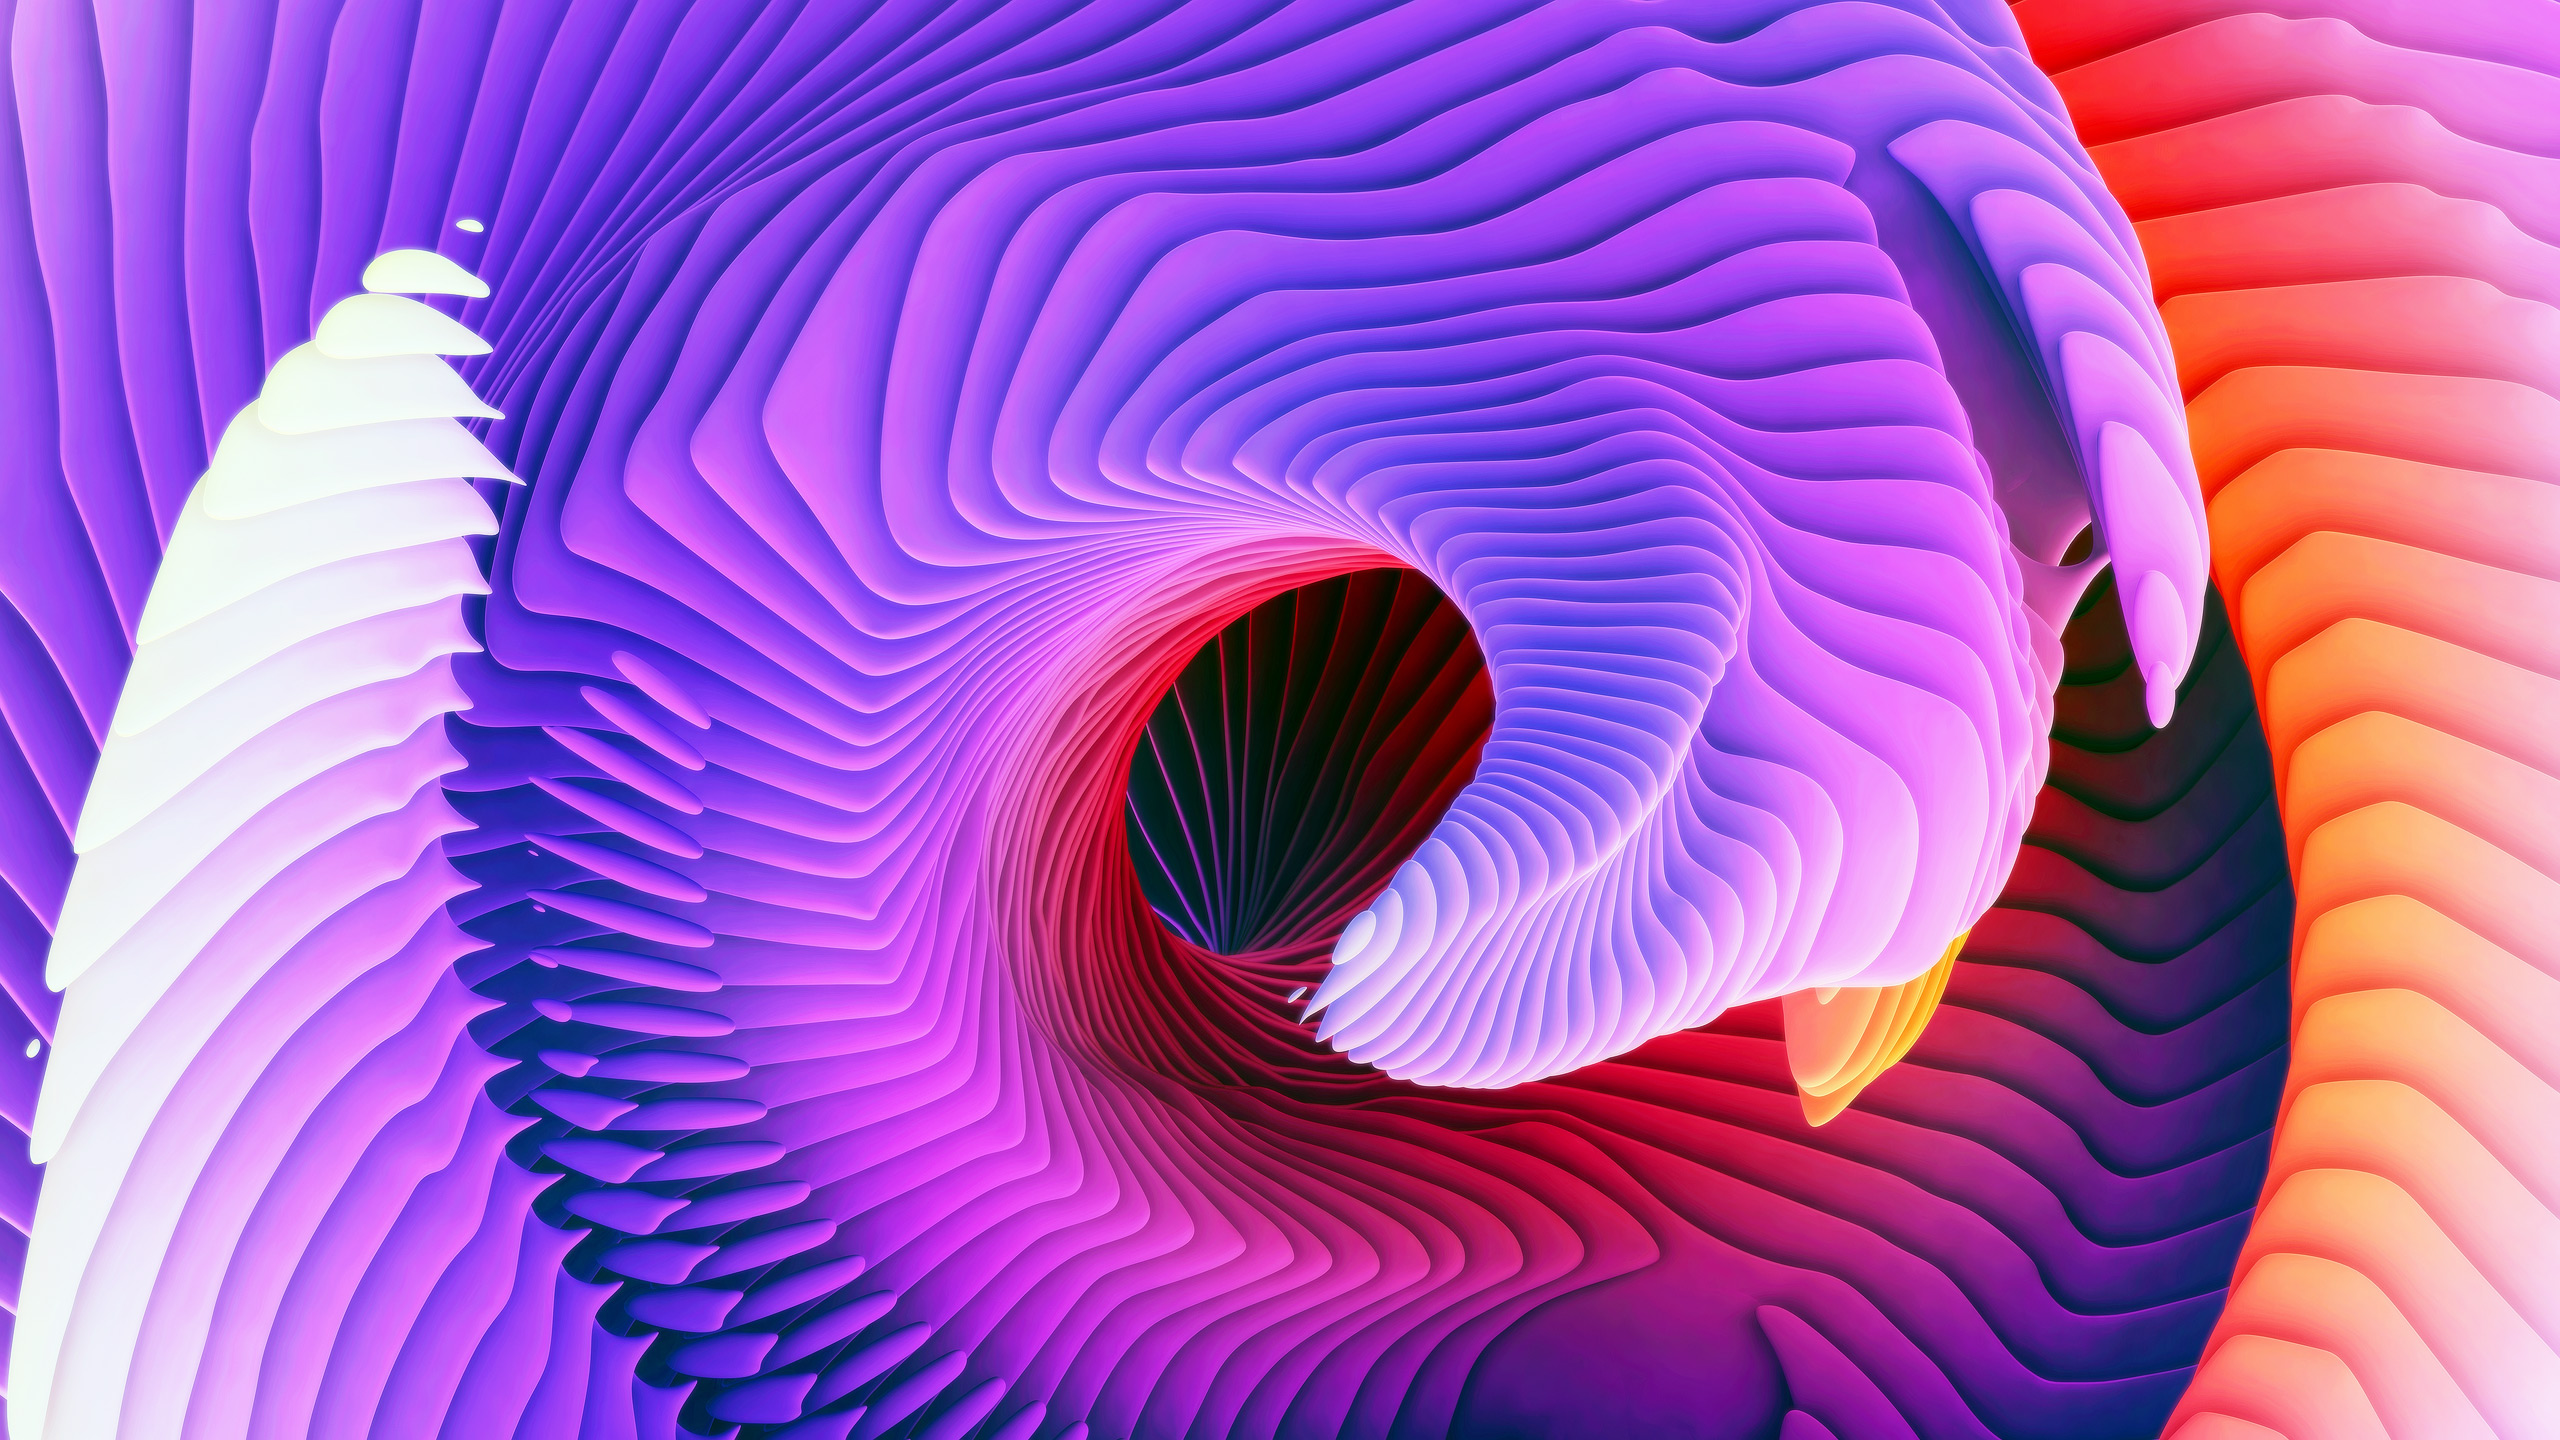 MacBook Pro Event Wallpaper ari weinkle Spiral_1B